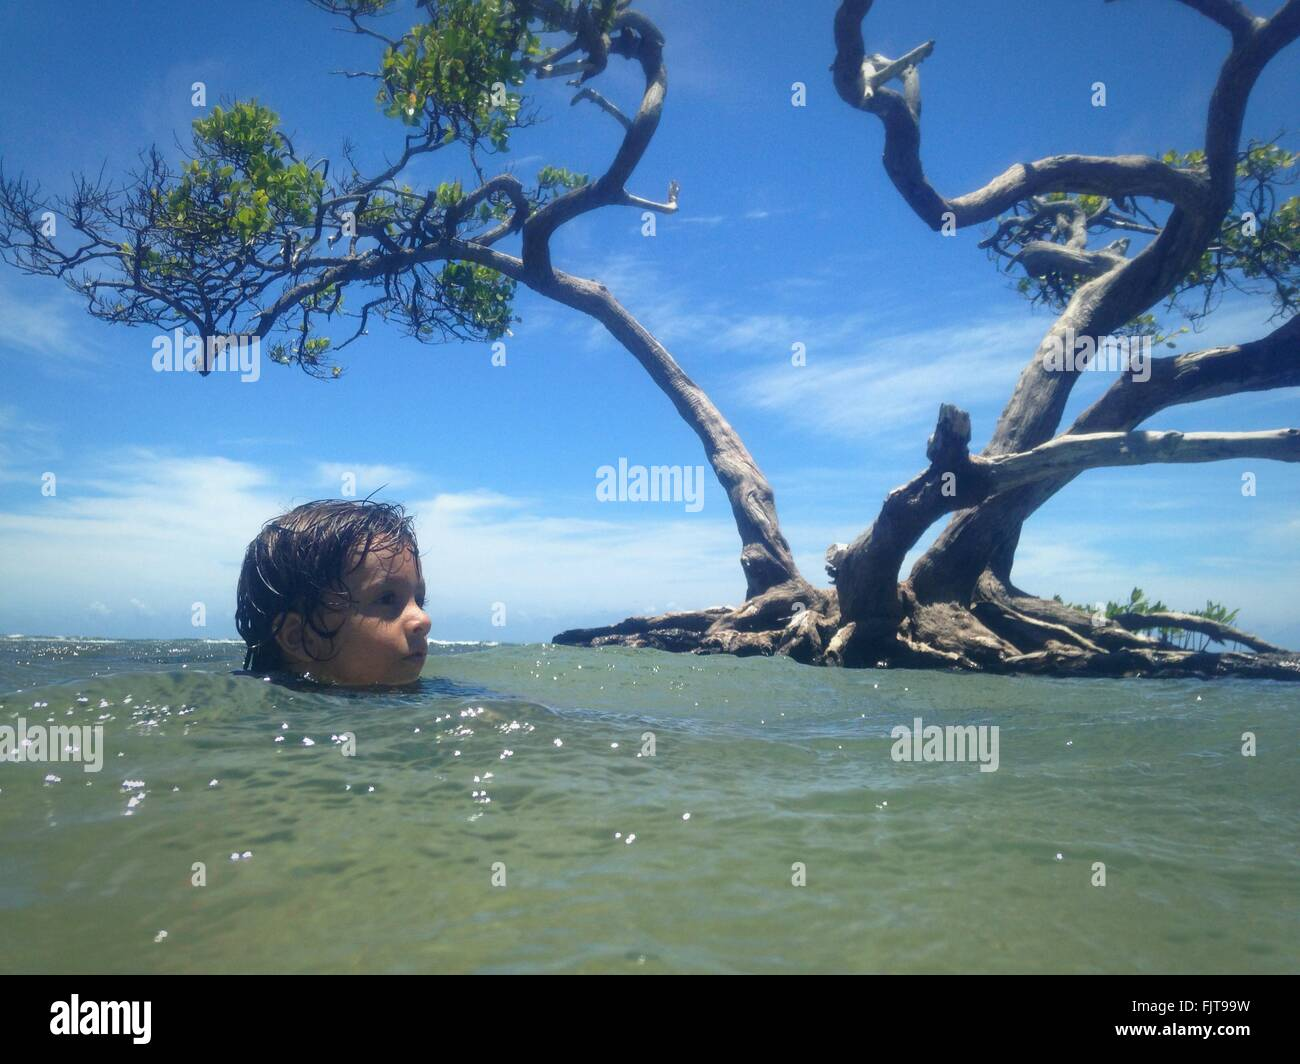 Boy Swimming In Lake Against Tree - Stock Image